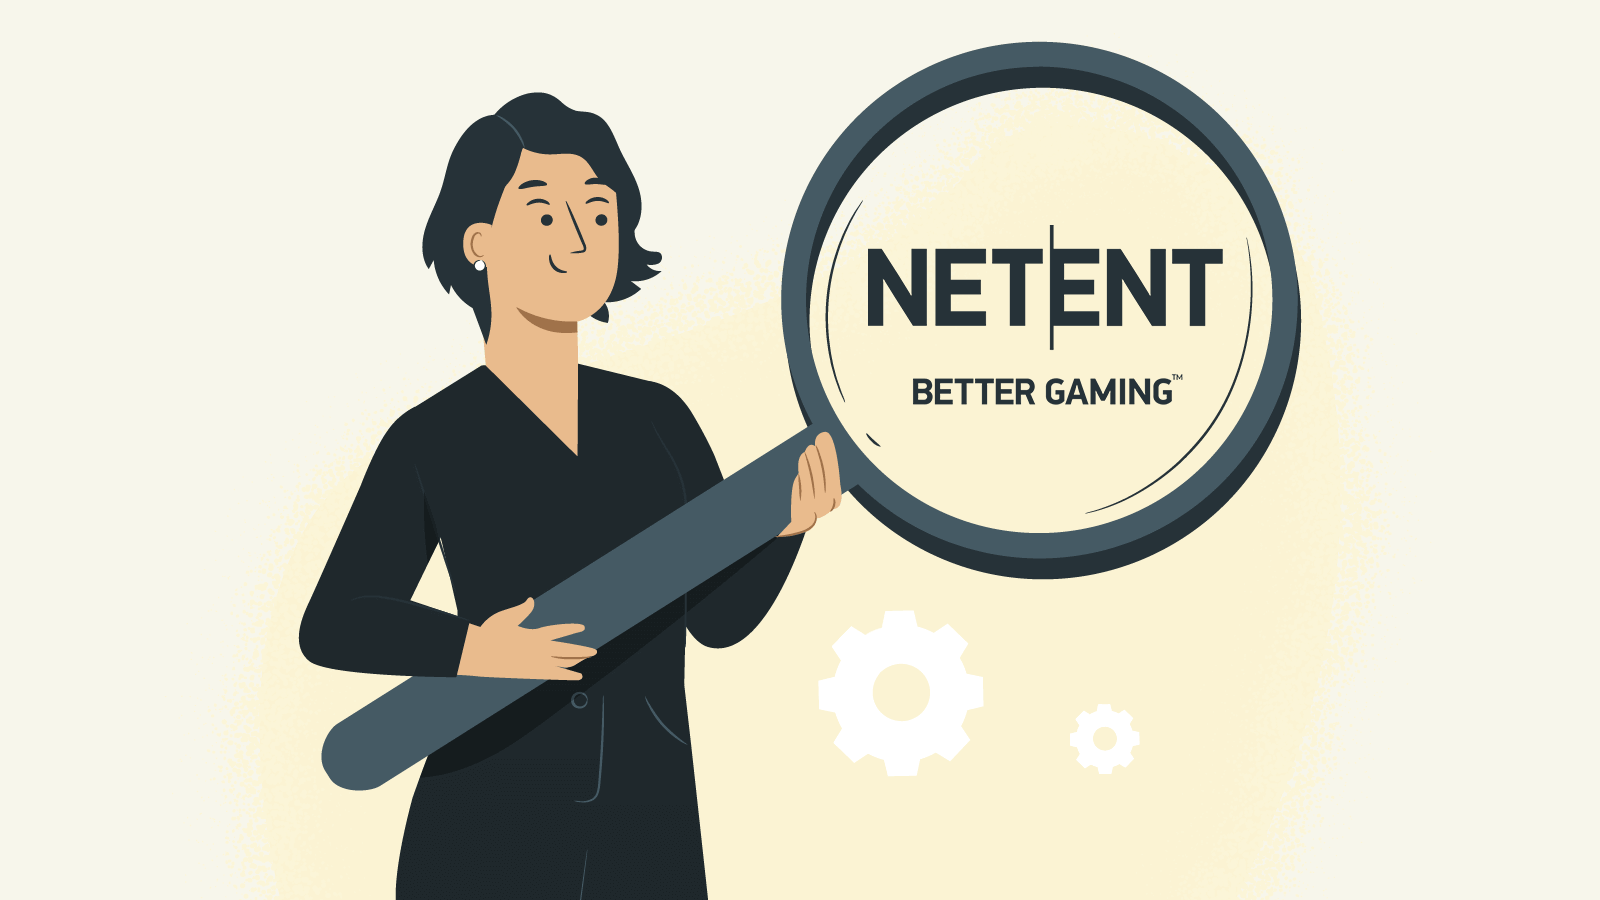 A note on NetEnt